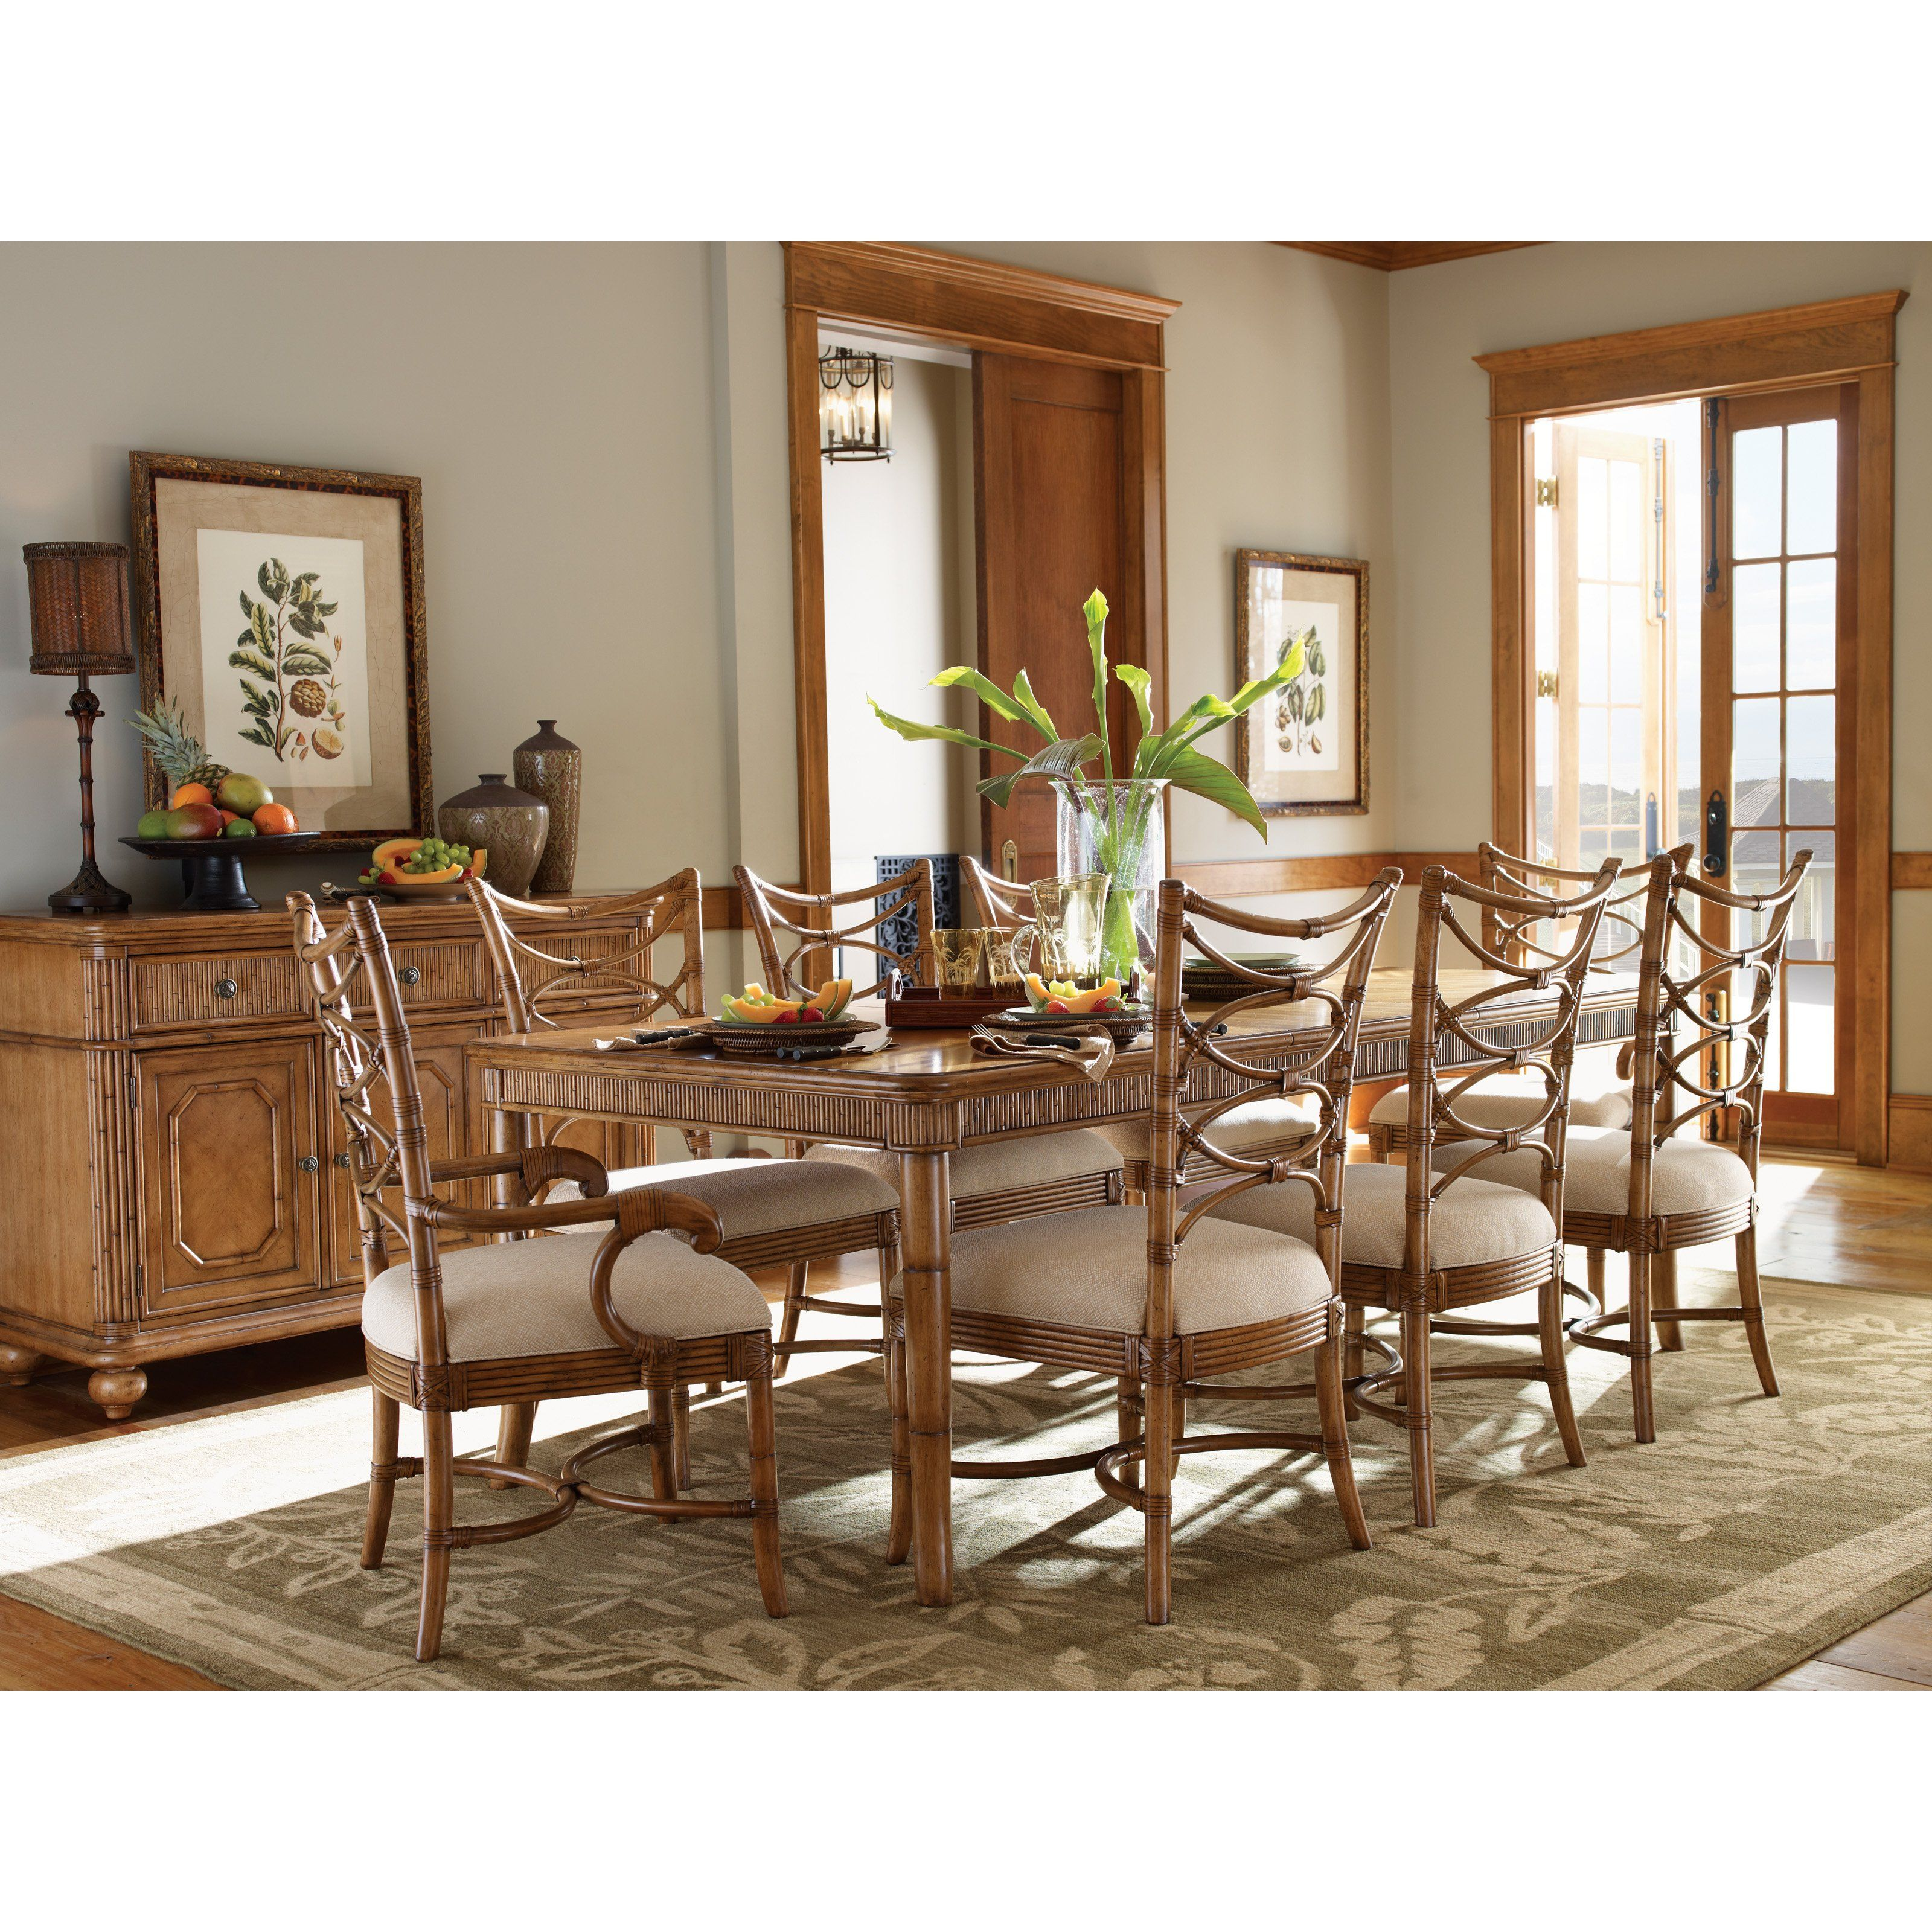 Tommy Bahama By Lexington Home Brands Beach House 9 Piece Boca Grande Dining Set 3160 Beach House Dining Room Dining Table In Kitchen